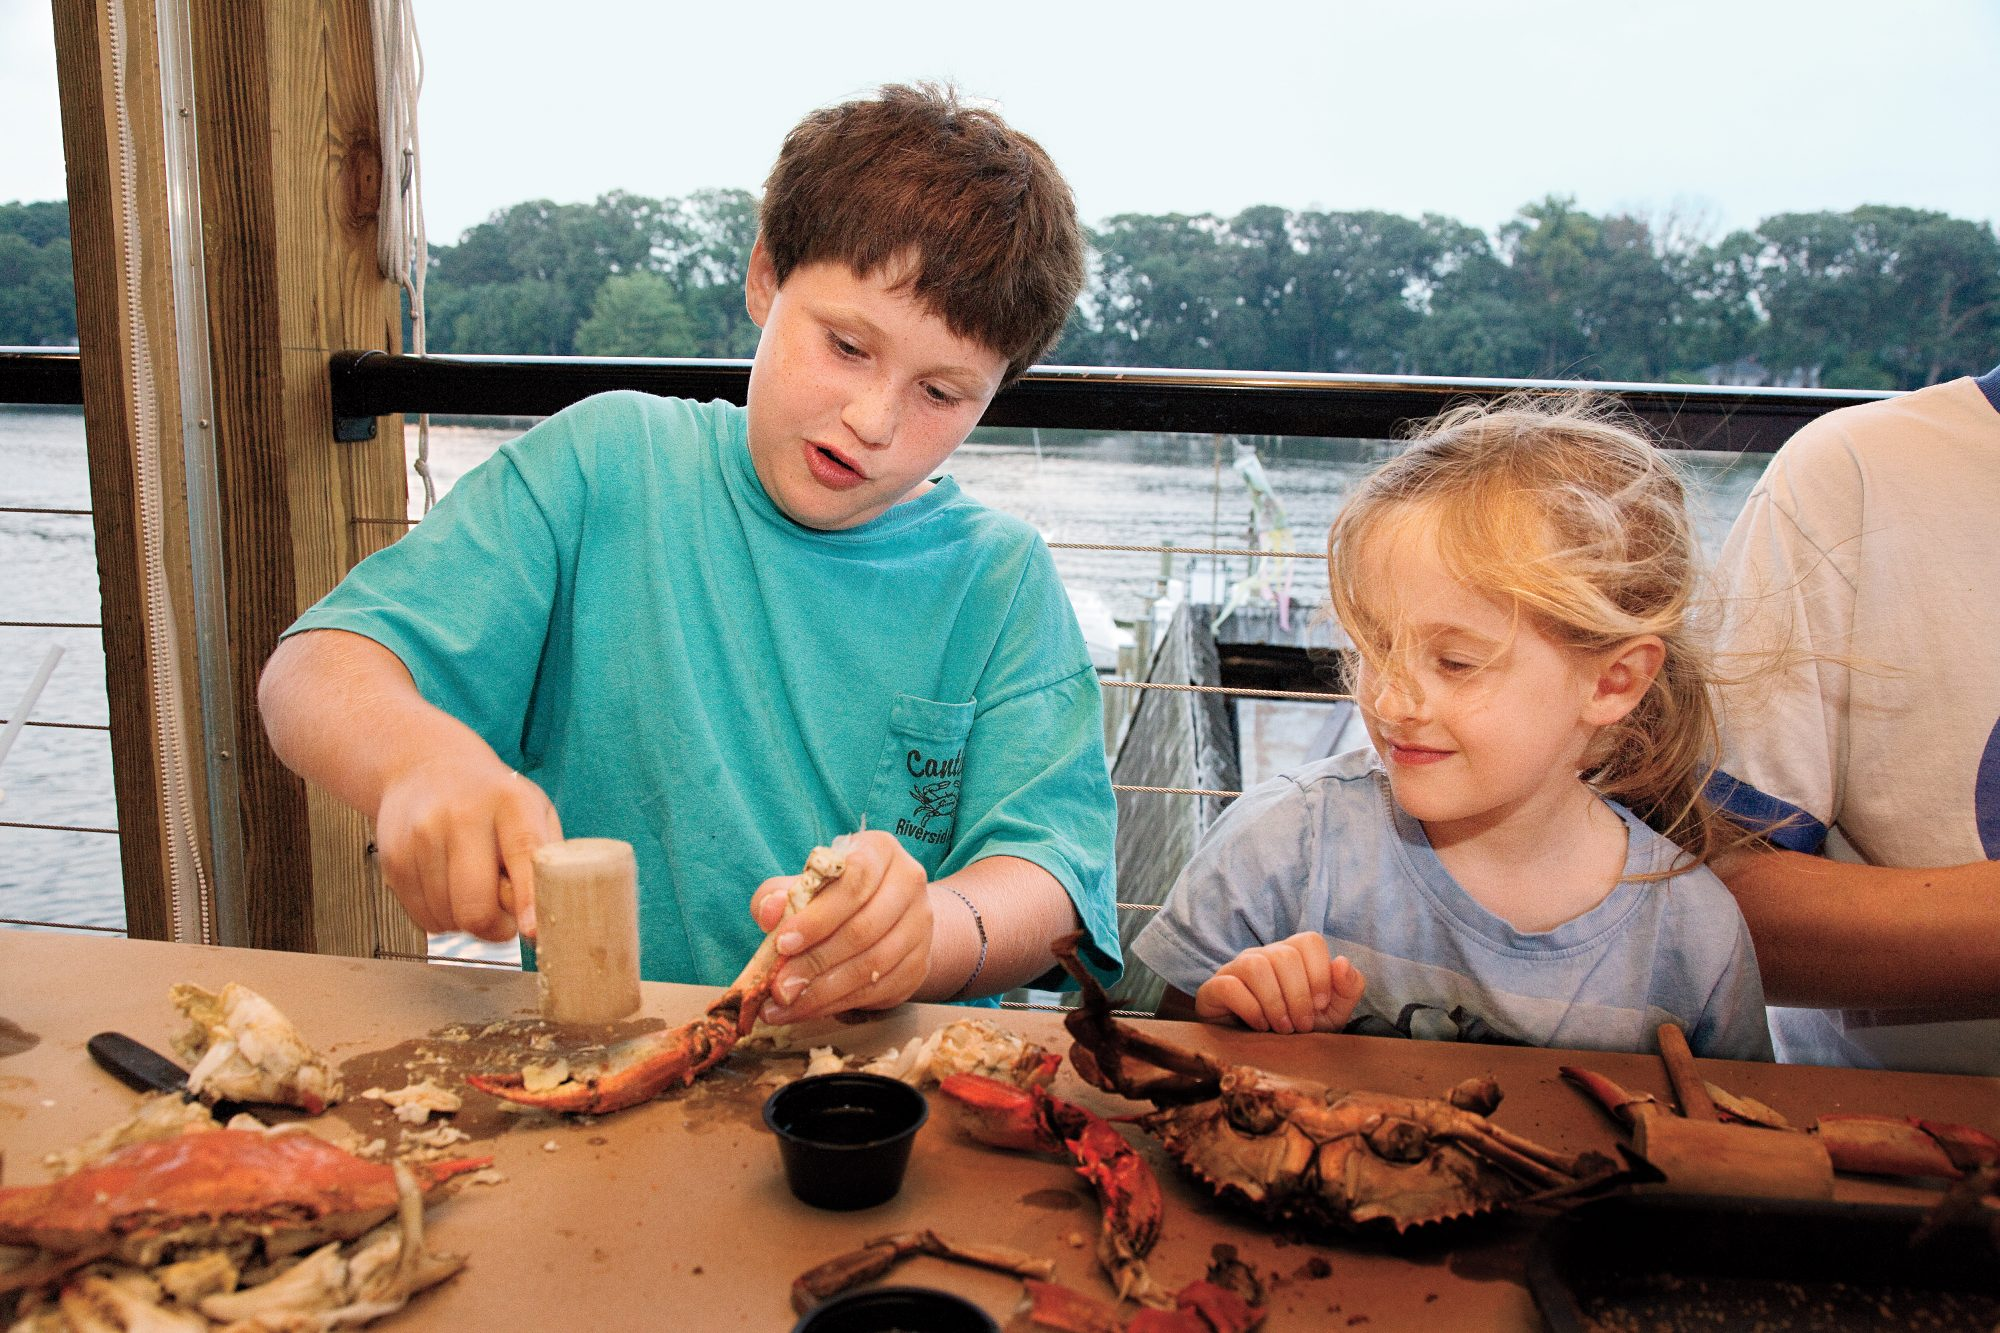 3: Visit an Authentic Crab Shack